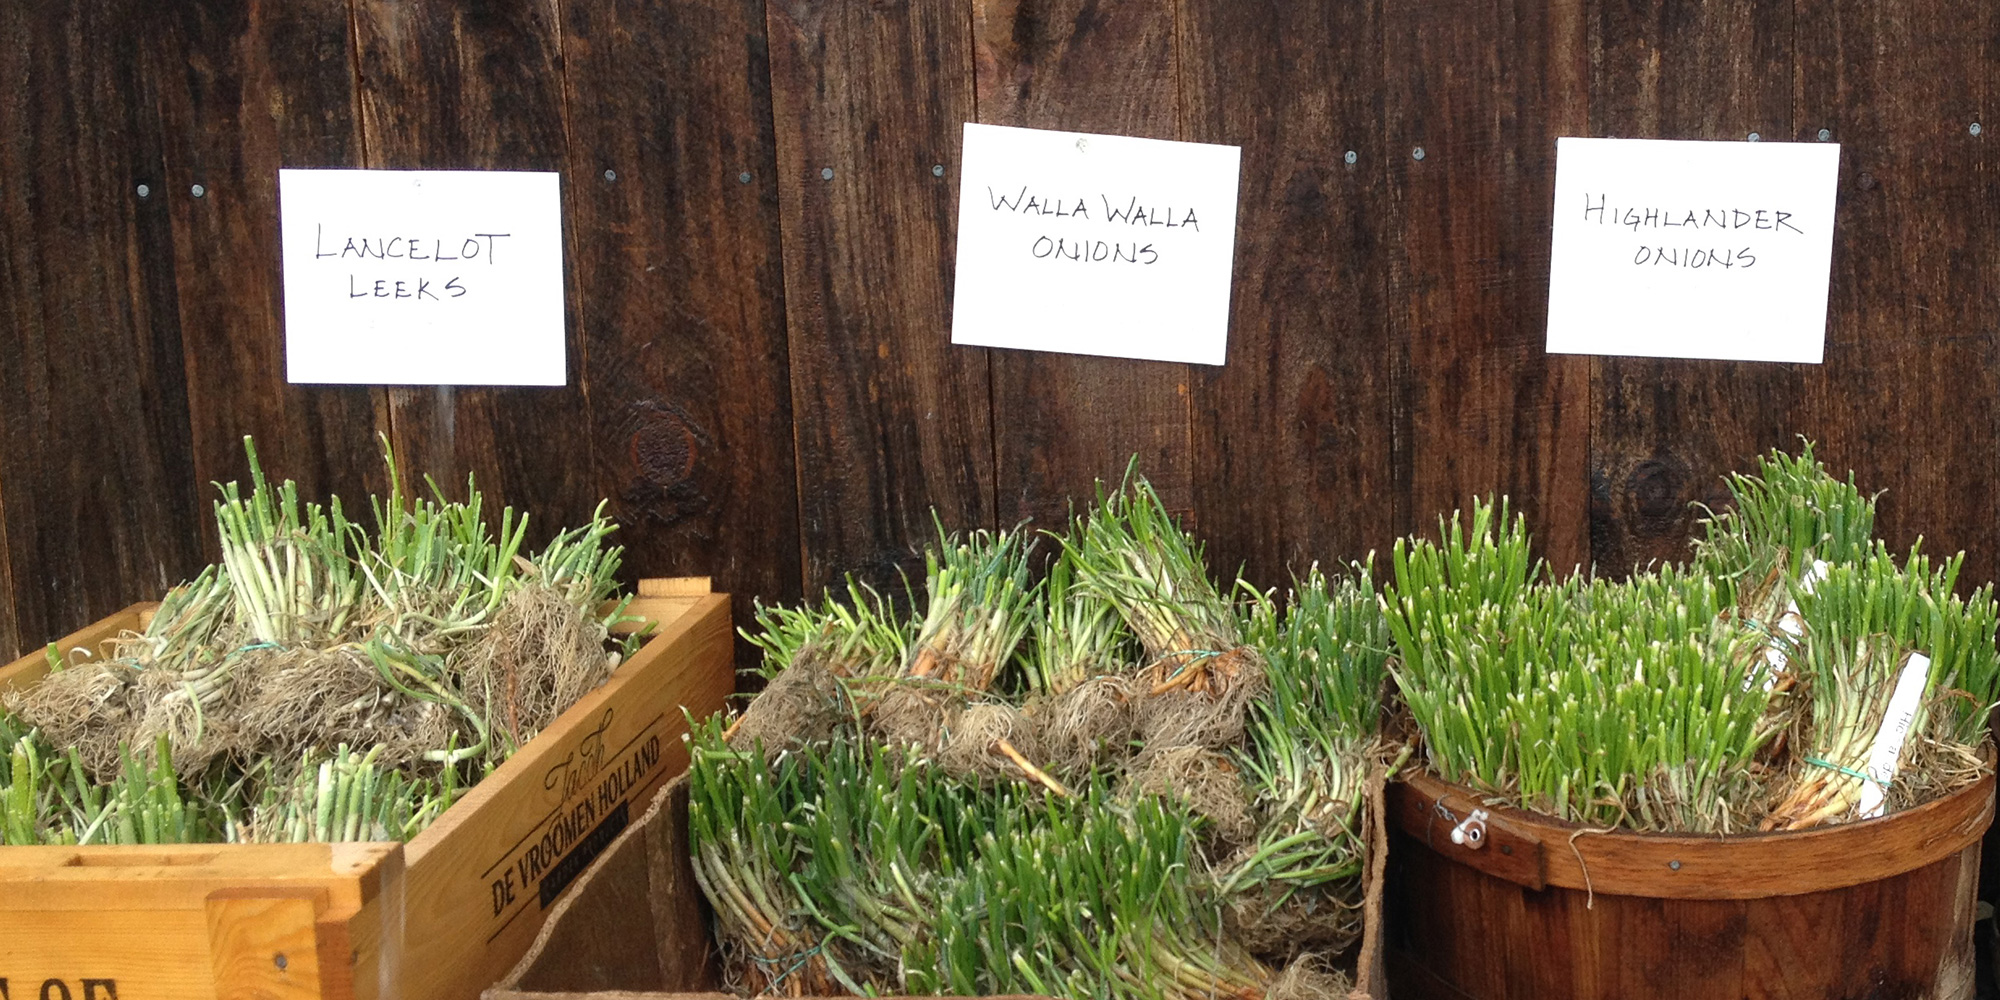 Crates of onion and leek plants for sale in spring